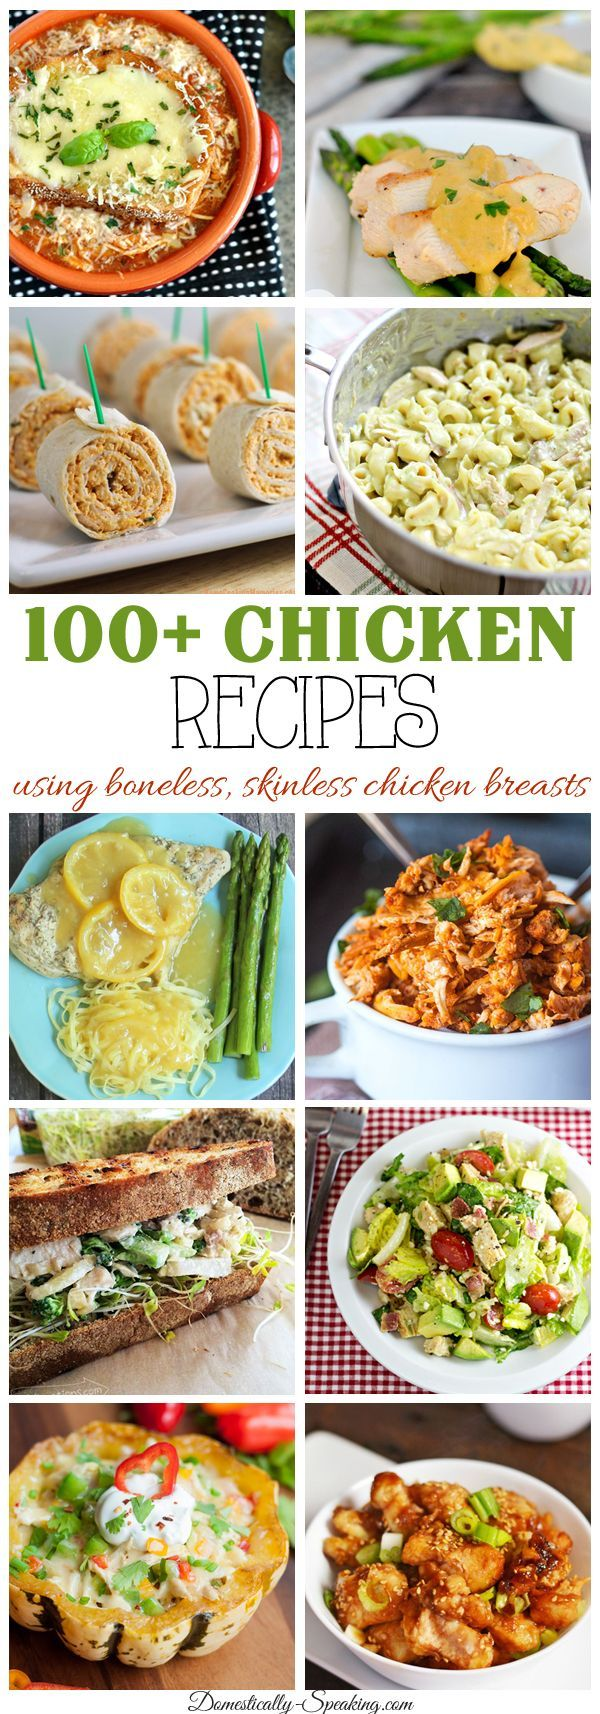 Over 100 Boneless, Skinless Chicken Breast Recipes chicken will never be boring again. Lots of soups, sandwiches, casseroles and more.